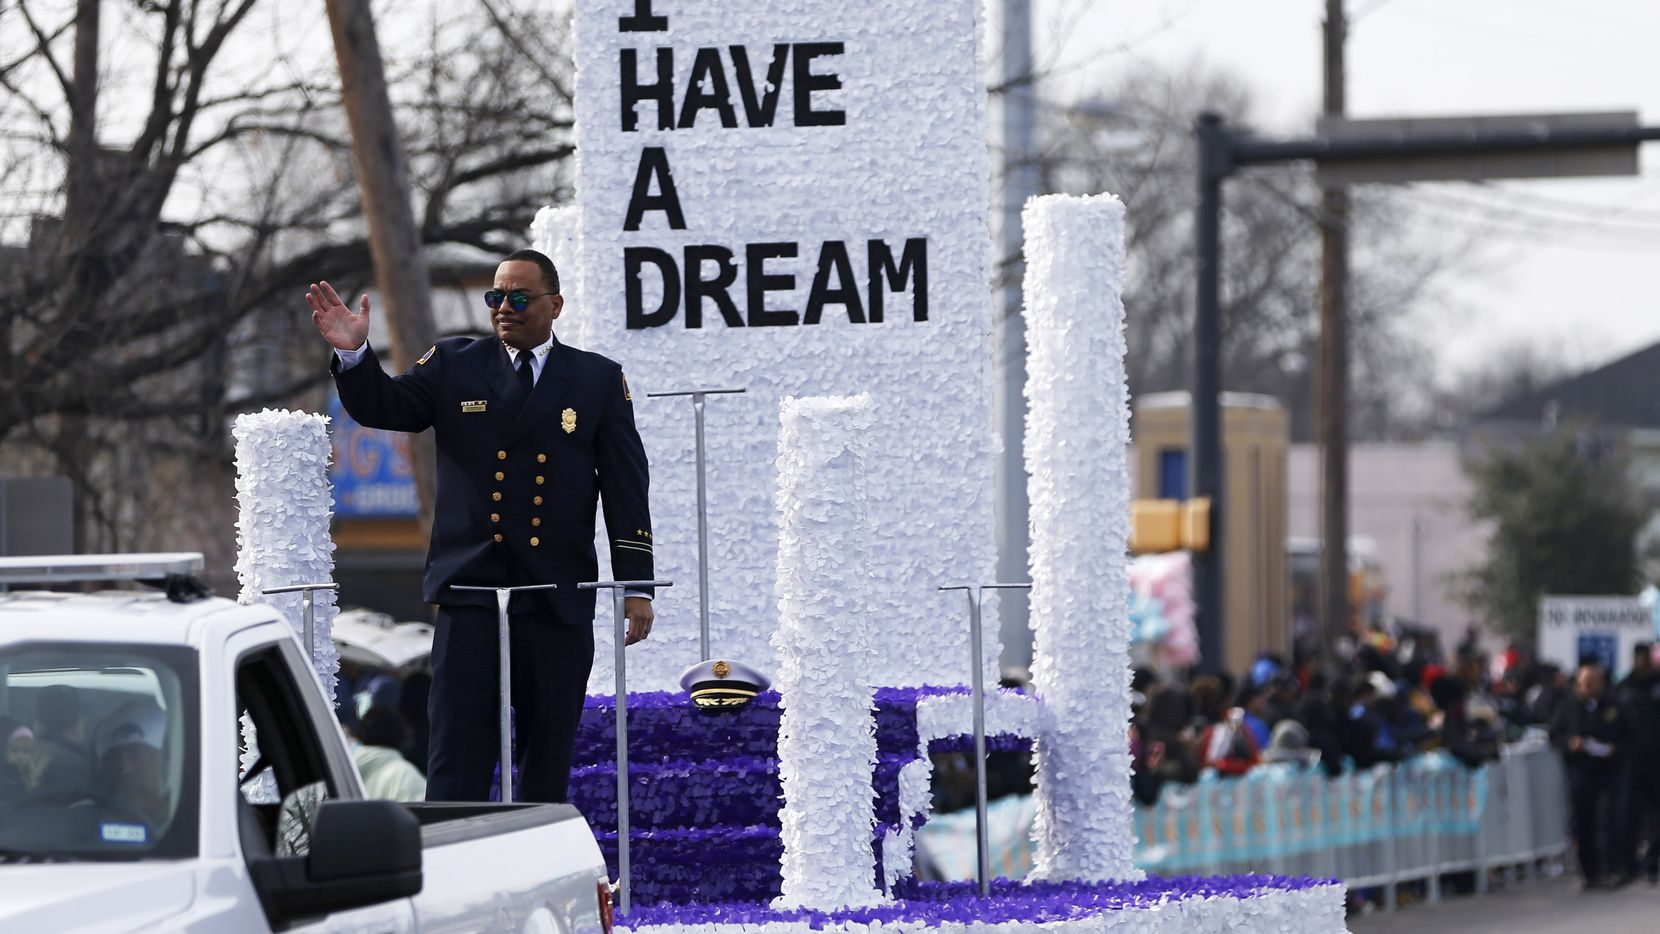 Dallas Fire-Rescue Chief Dominique Artis, grand marshall waves to the people as they make their way down Martin Luther King Jr. Blvd during the 37th Annual MLK Parade in Dallas on Jan. 21, 2019.